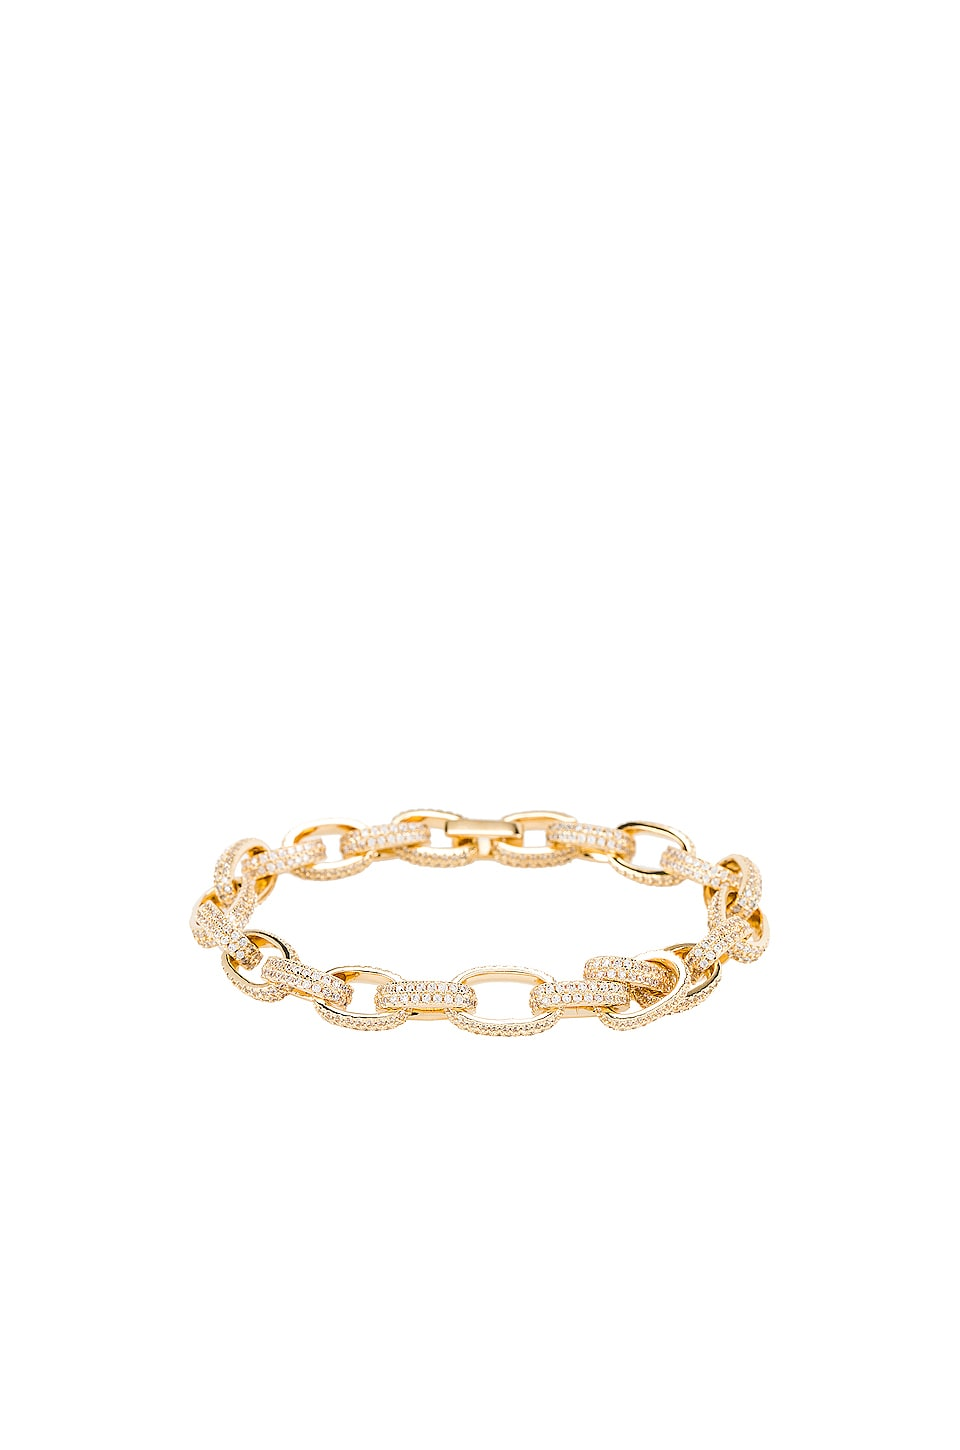 joolz by Martha Calvo Pave Celine Bracelet in Gold